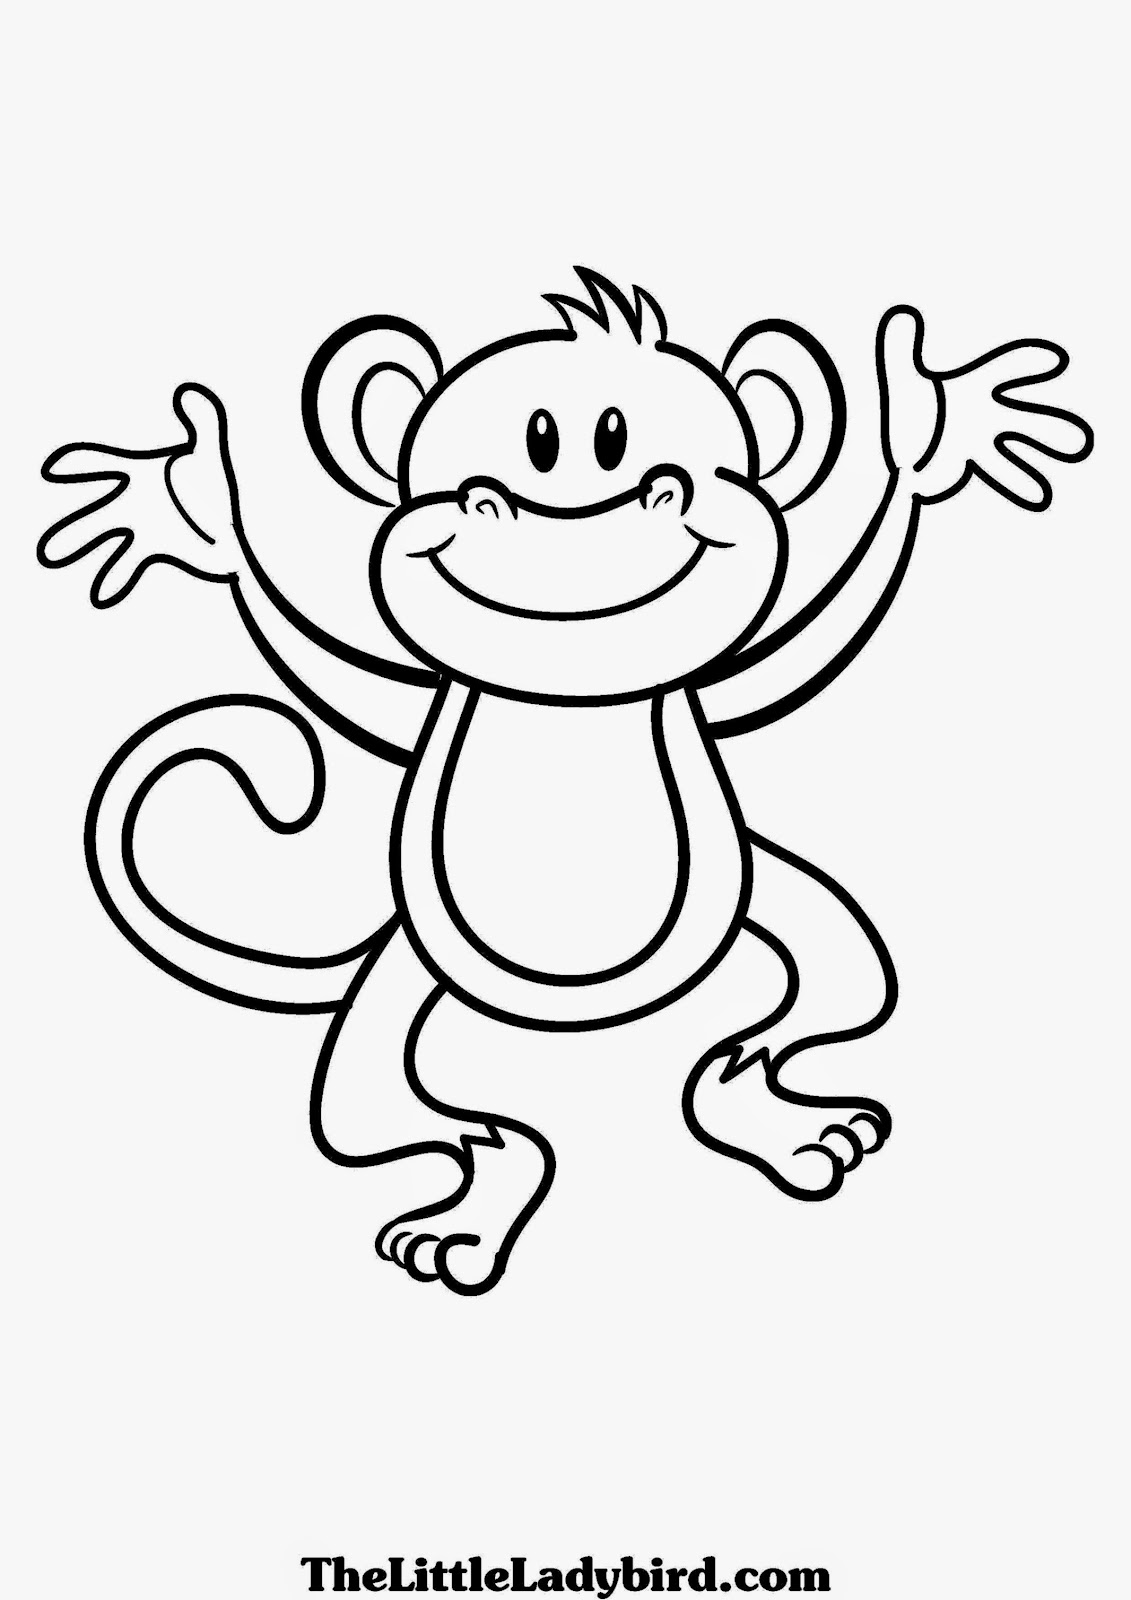 Cute Coloring Pages of Baby Monkeys Cute Baby Monkey Coloring Free